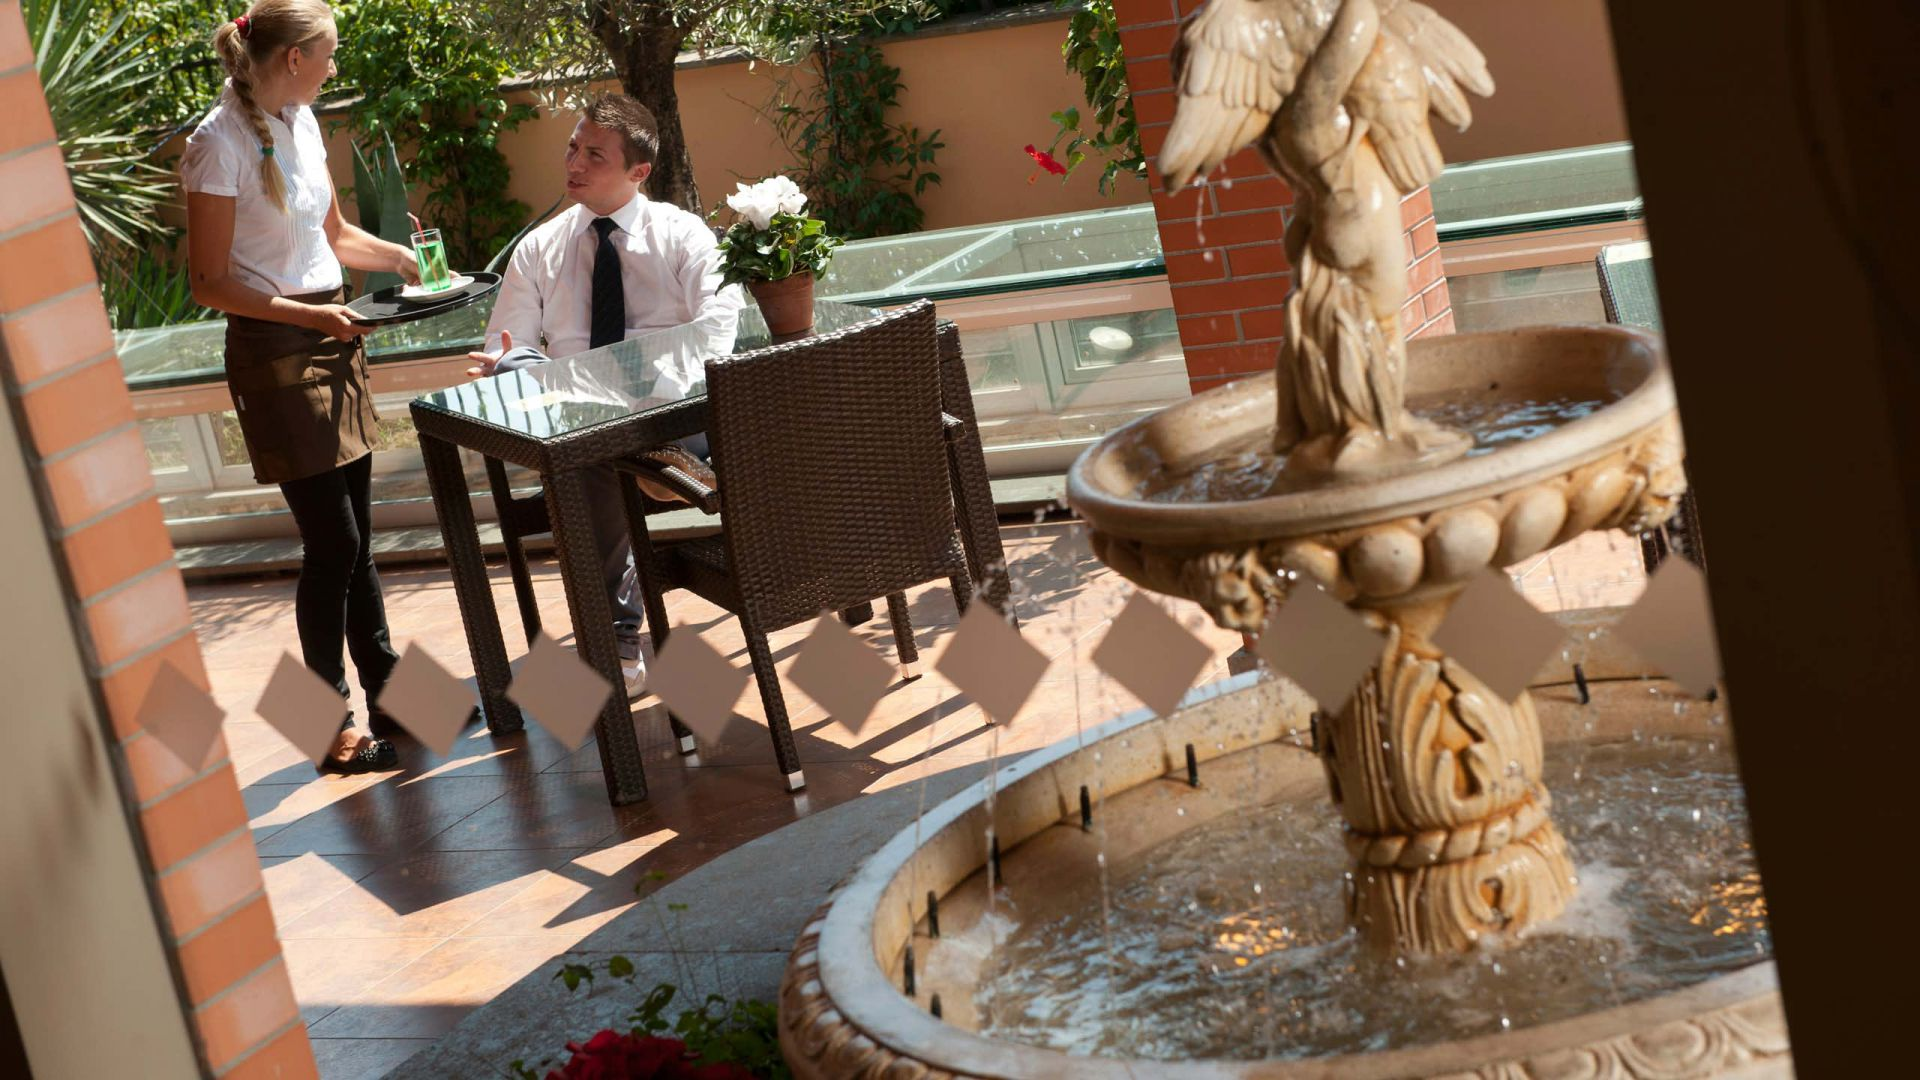 oc-hotel-rome-common-areas-004